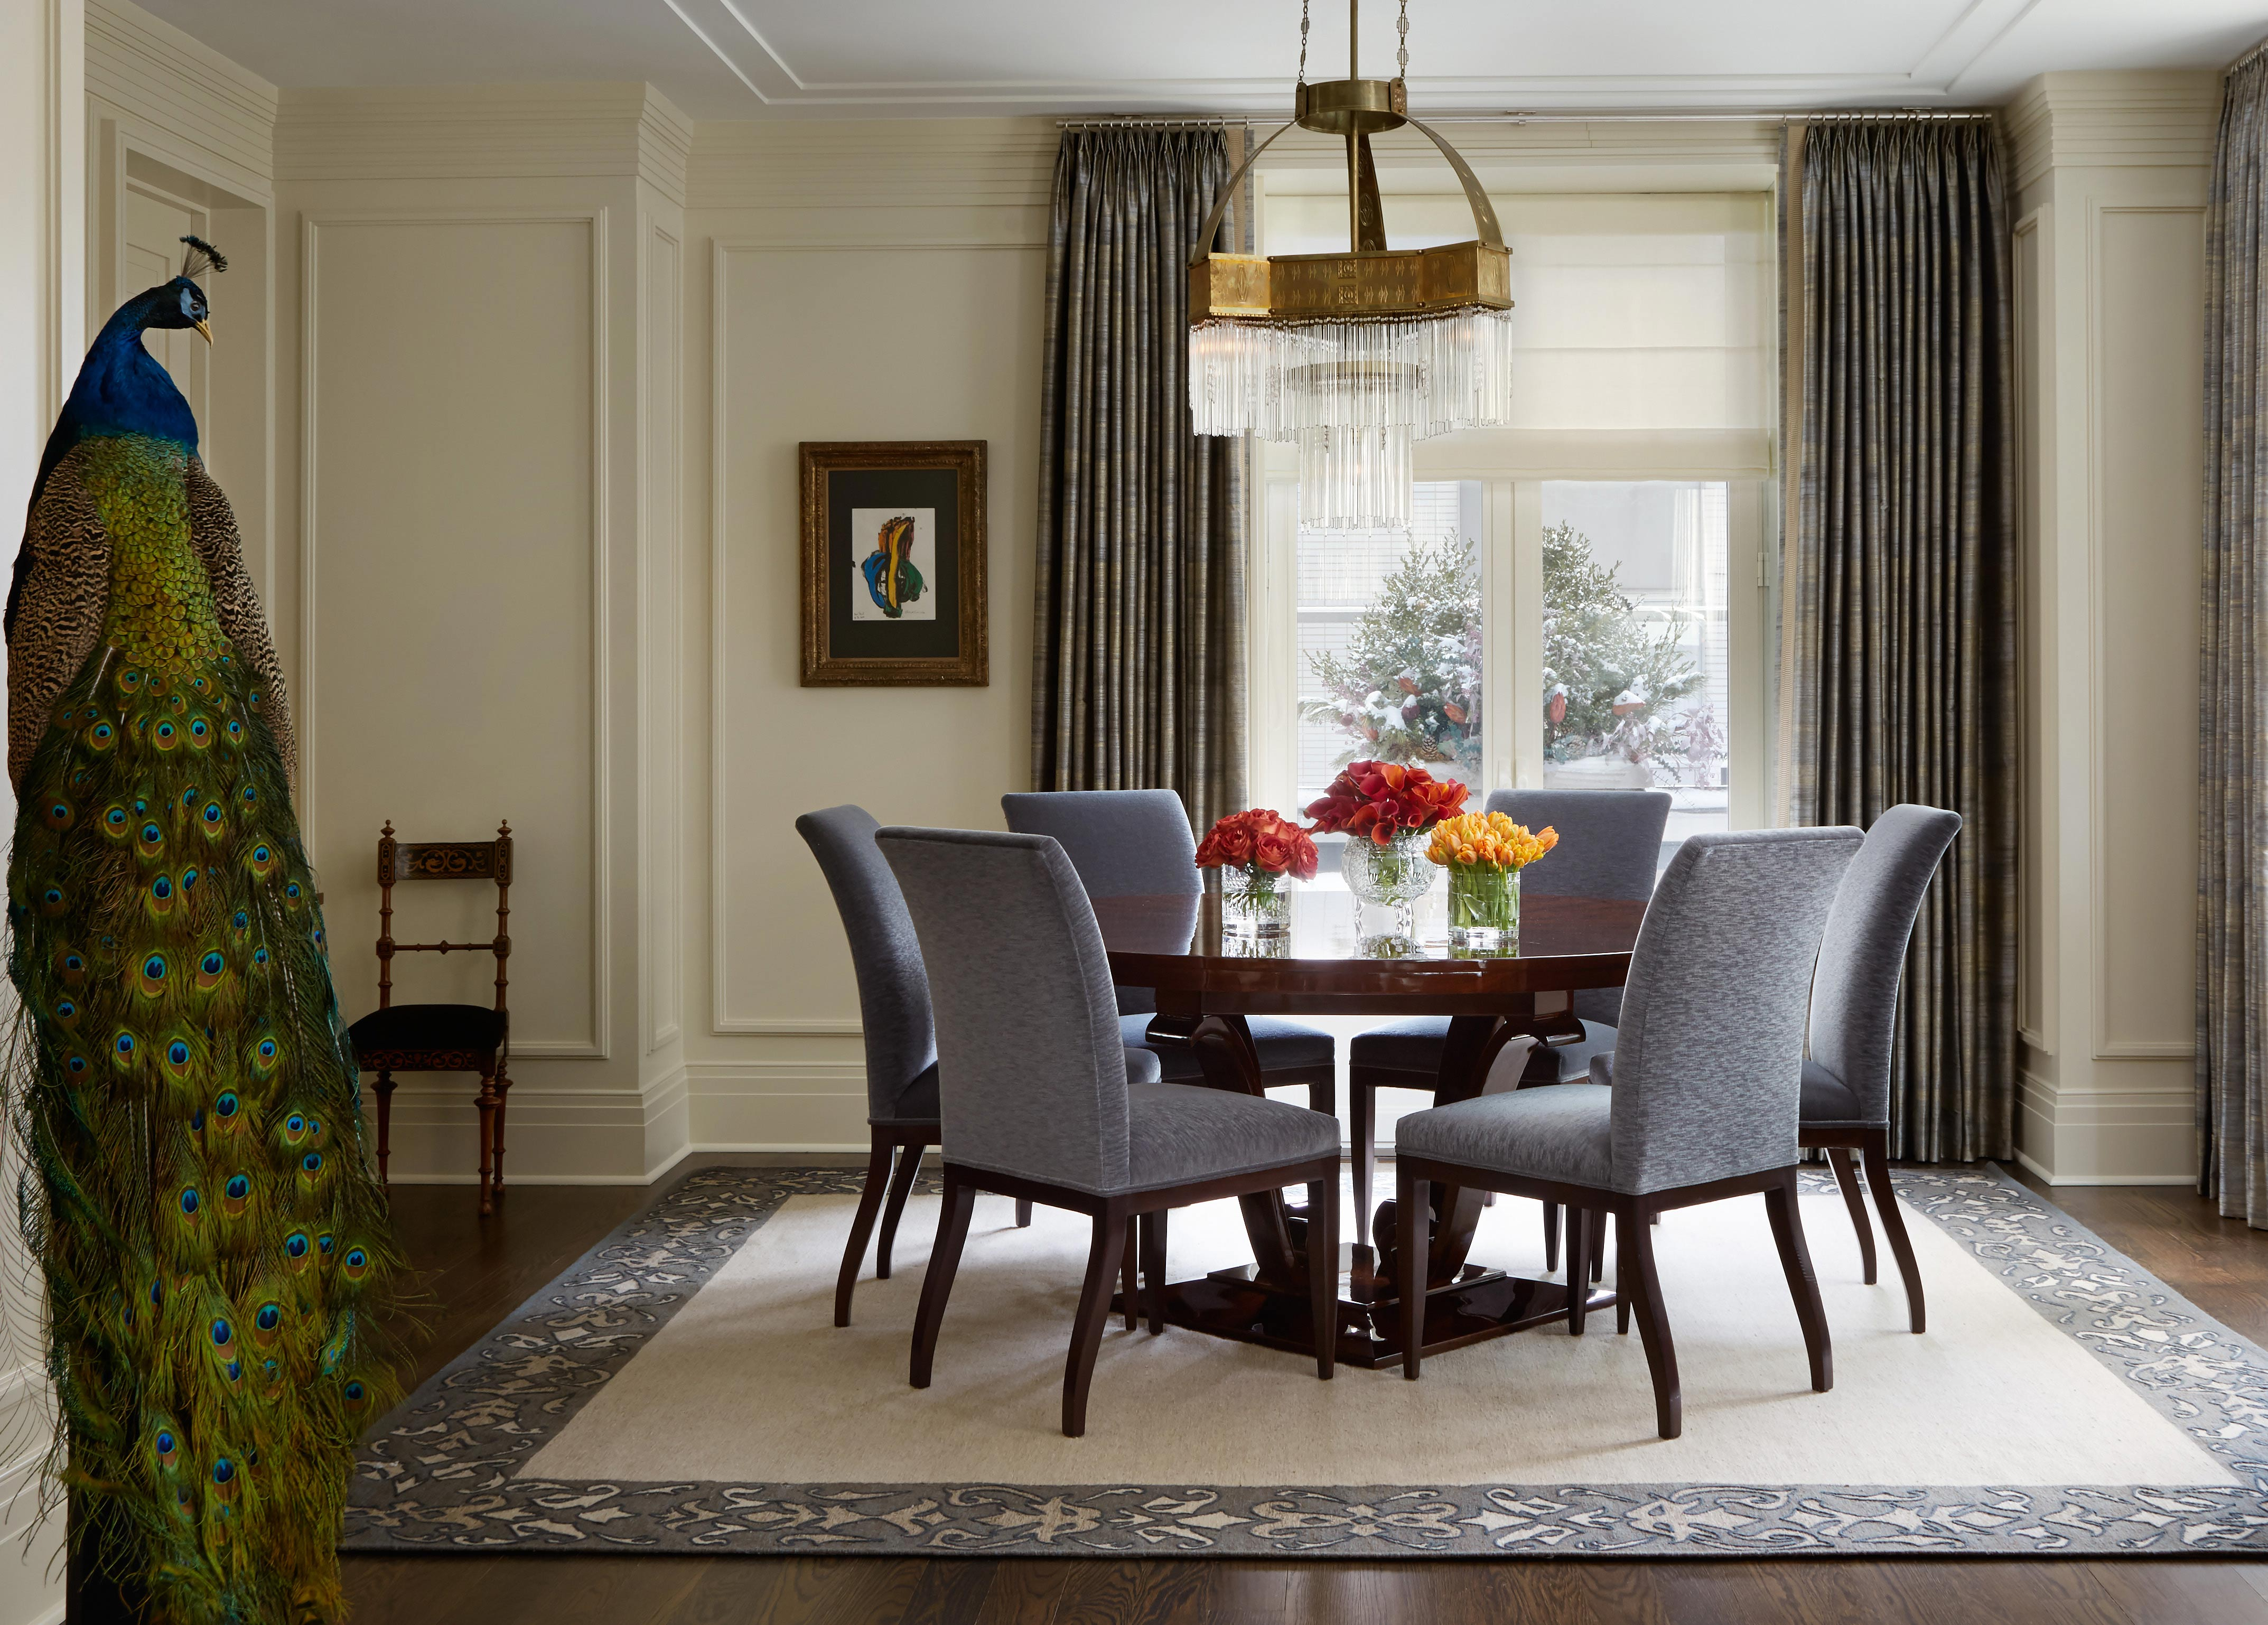 Chicago—004-Dining-Room-1536